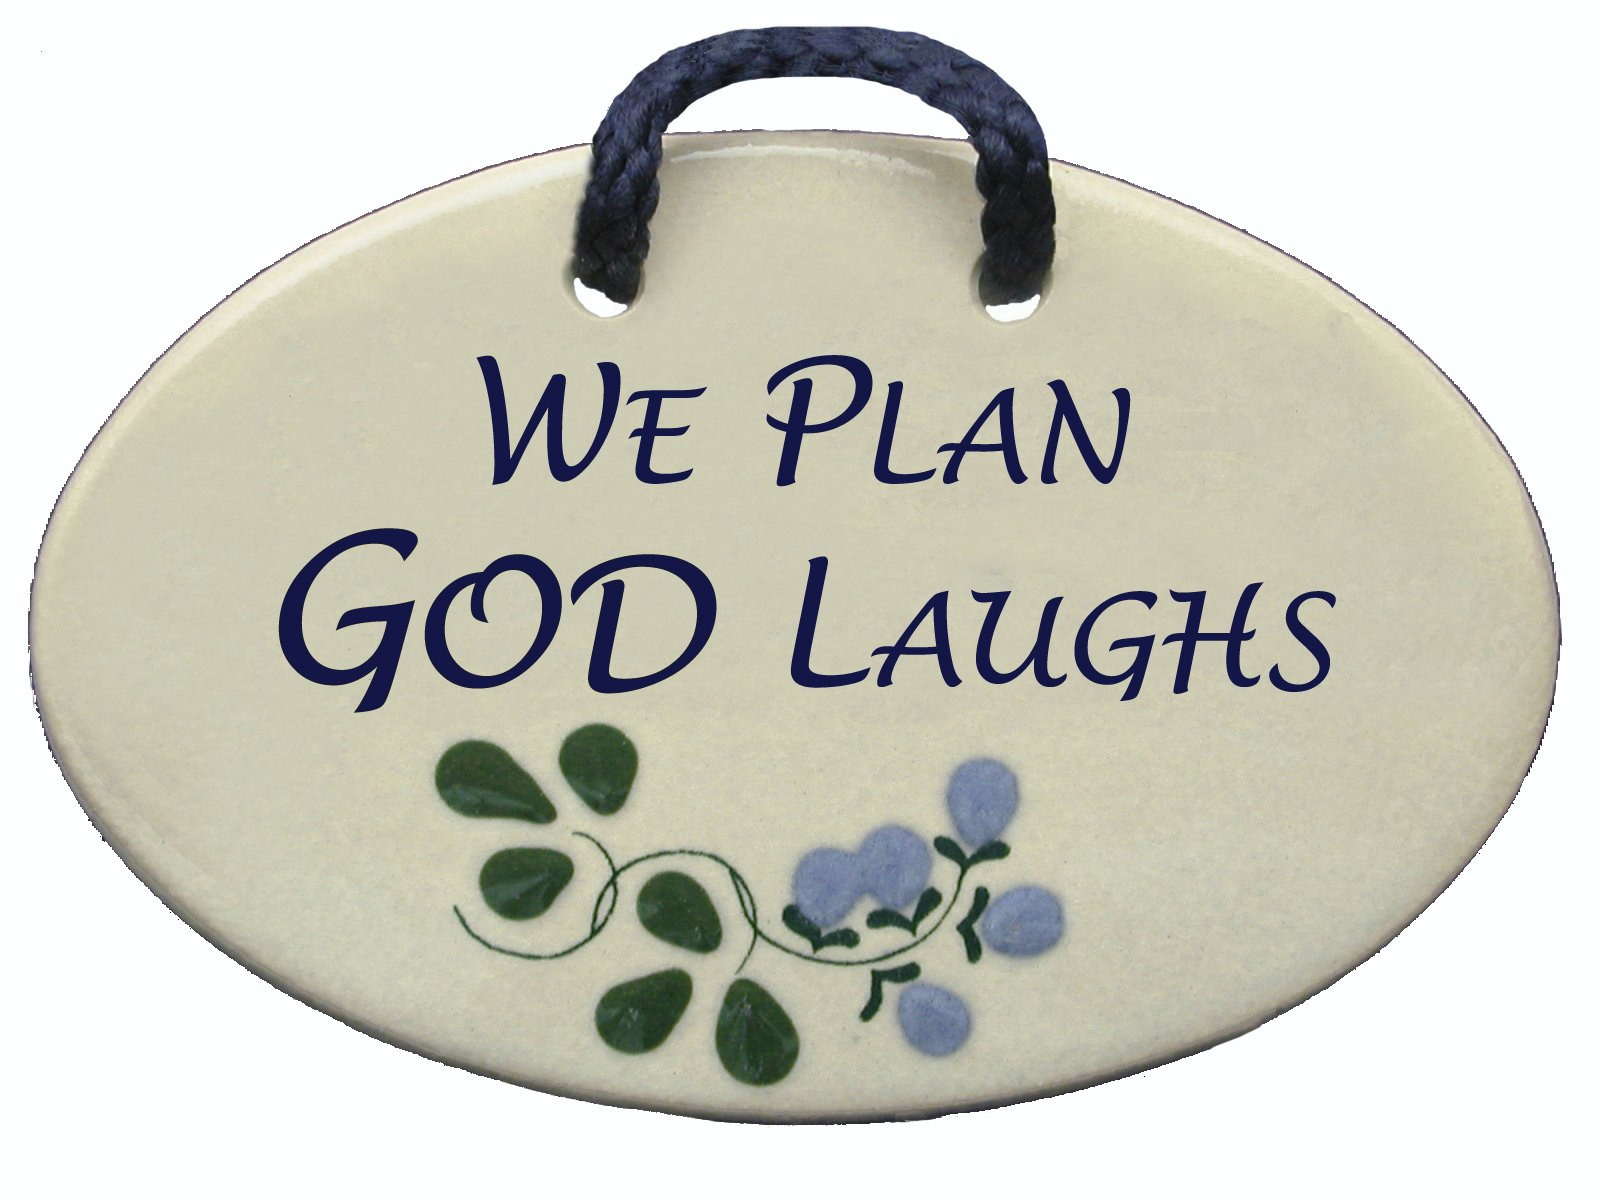 WE PLAN. GOD LAUGHS. Ceramic wall plaques handmade in the USA for over 30 years. Reduced price offsets shipping cost.